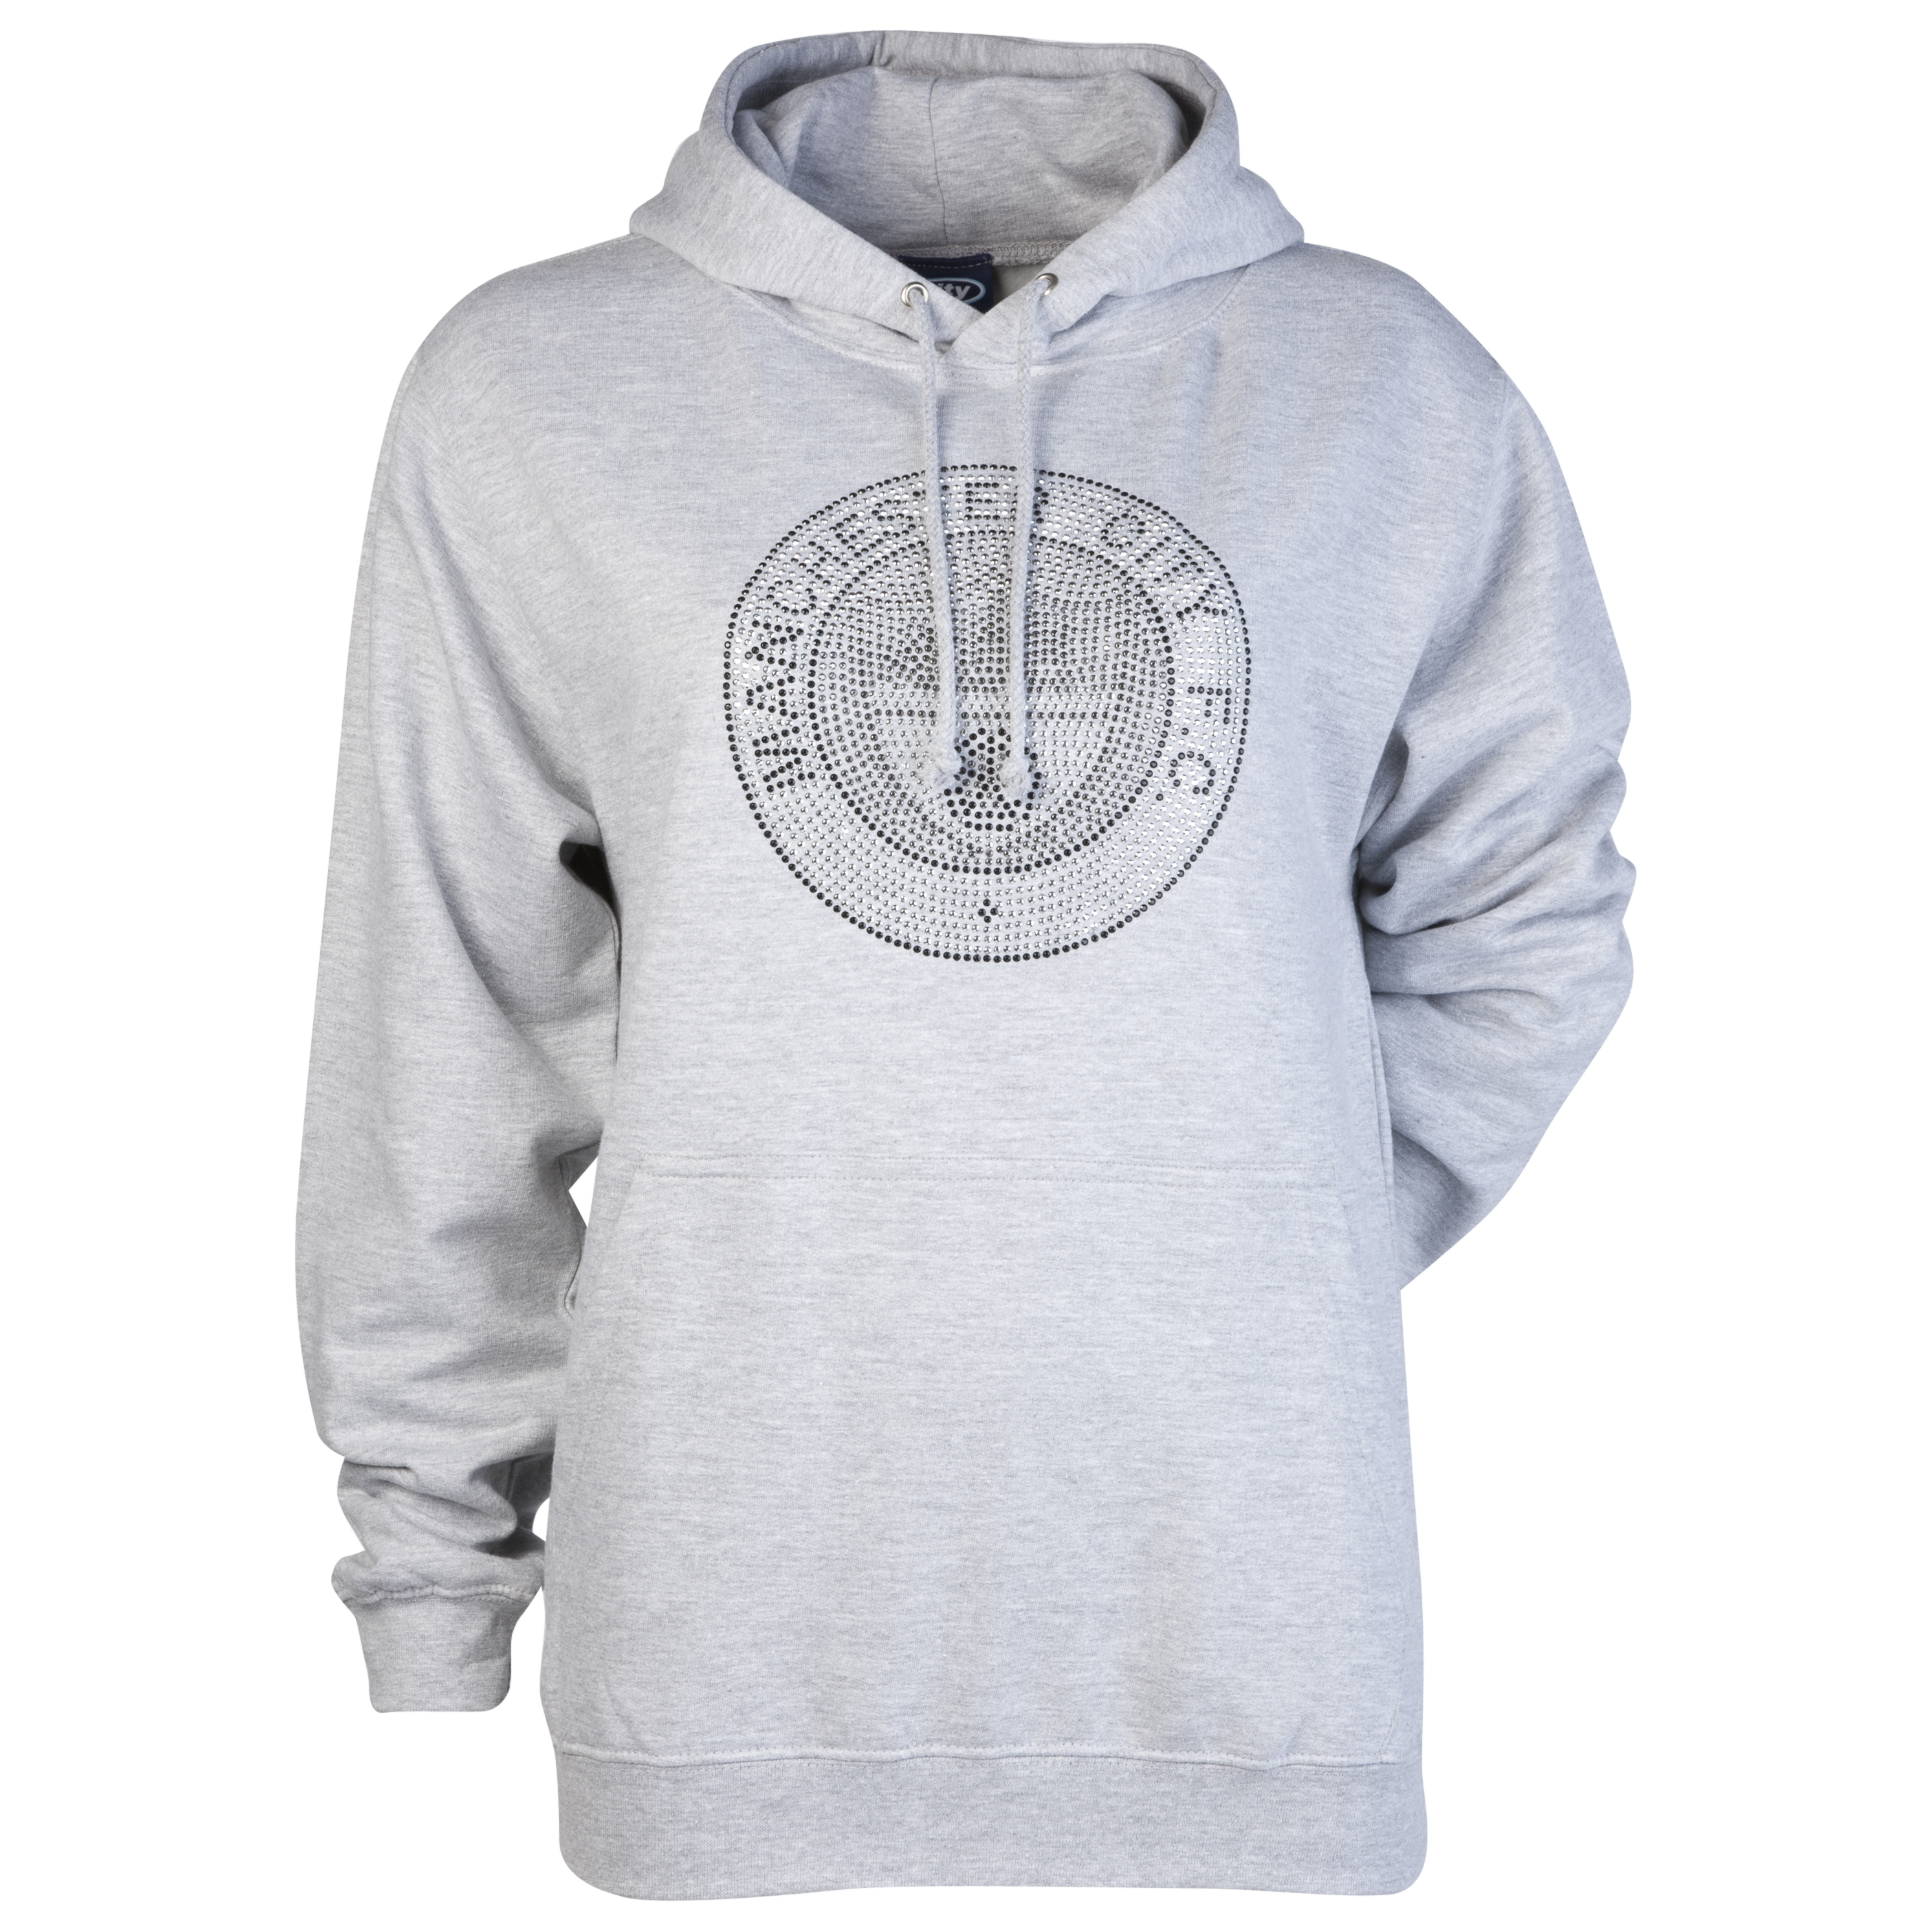 Manchester City Retro Rhinestone Hoodie - Grey Marl - Womens